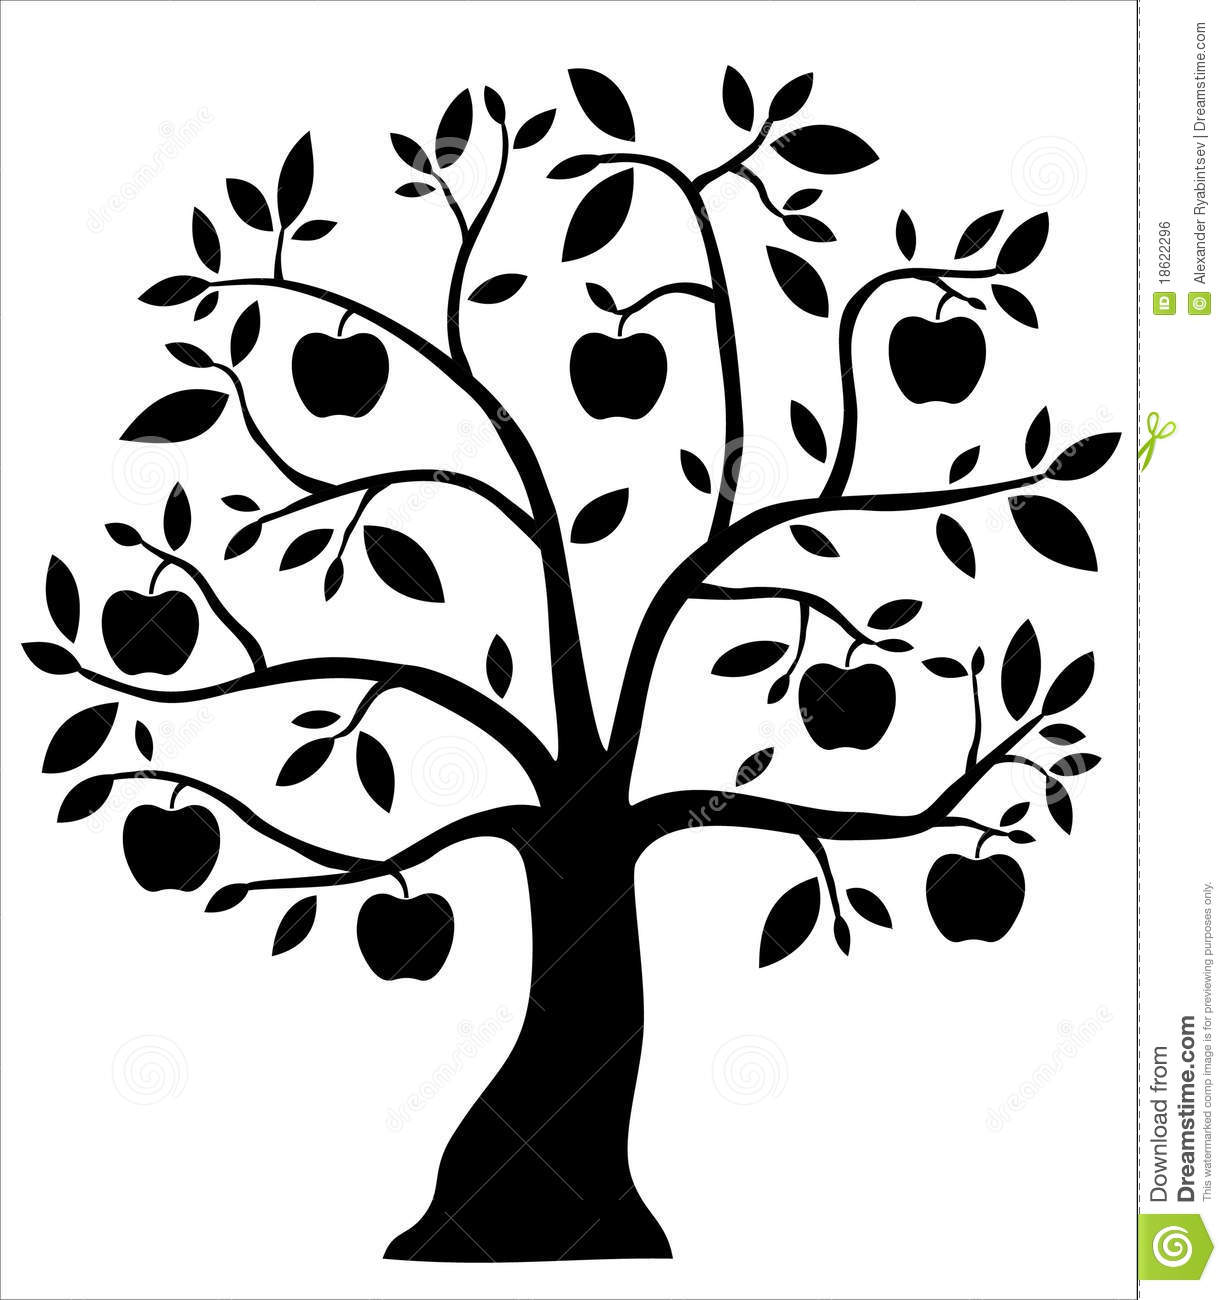 apple tree clipart black and white. royalty-free stock photo. download decorative black apple tree clipart and white